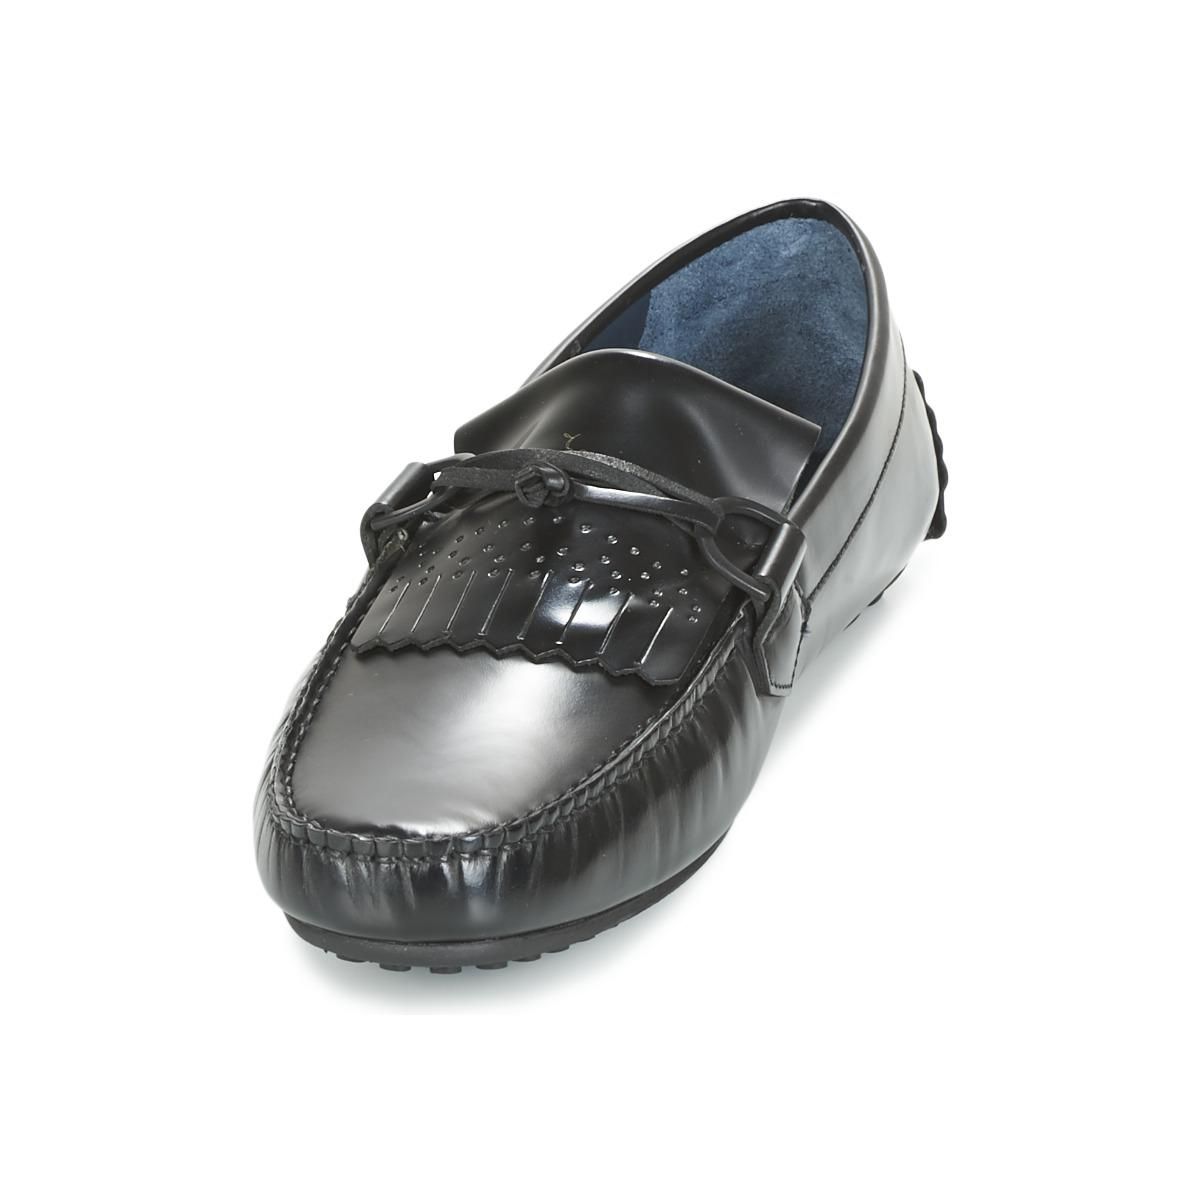 Paul & Joe Leather Moc Loafers / Casual Shoes in Black for Men